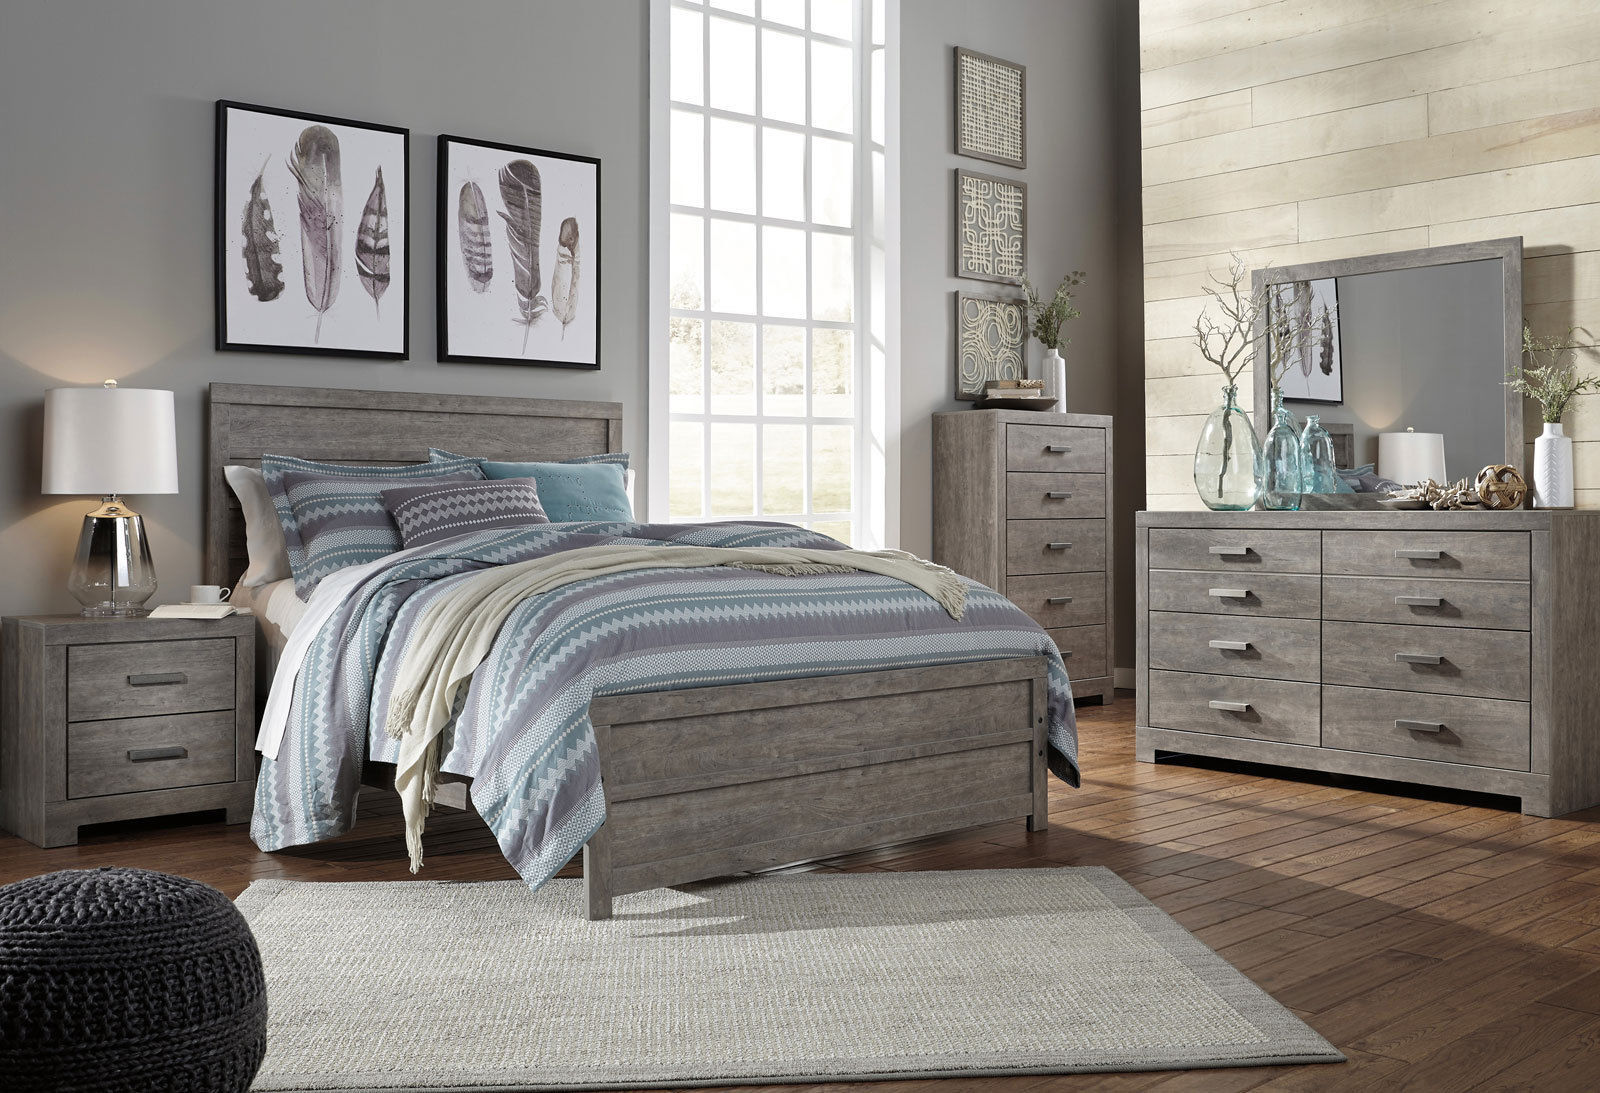 New 5 Piece Modern Rustic Gray Bedroom Set Furniture W